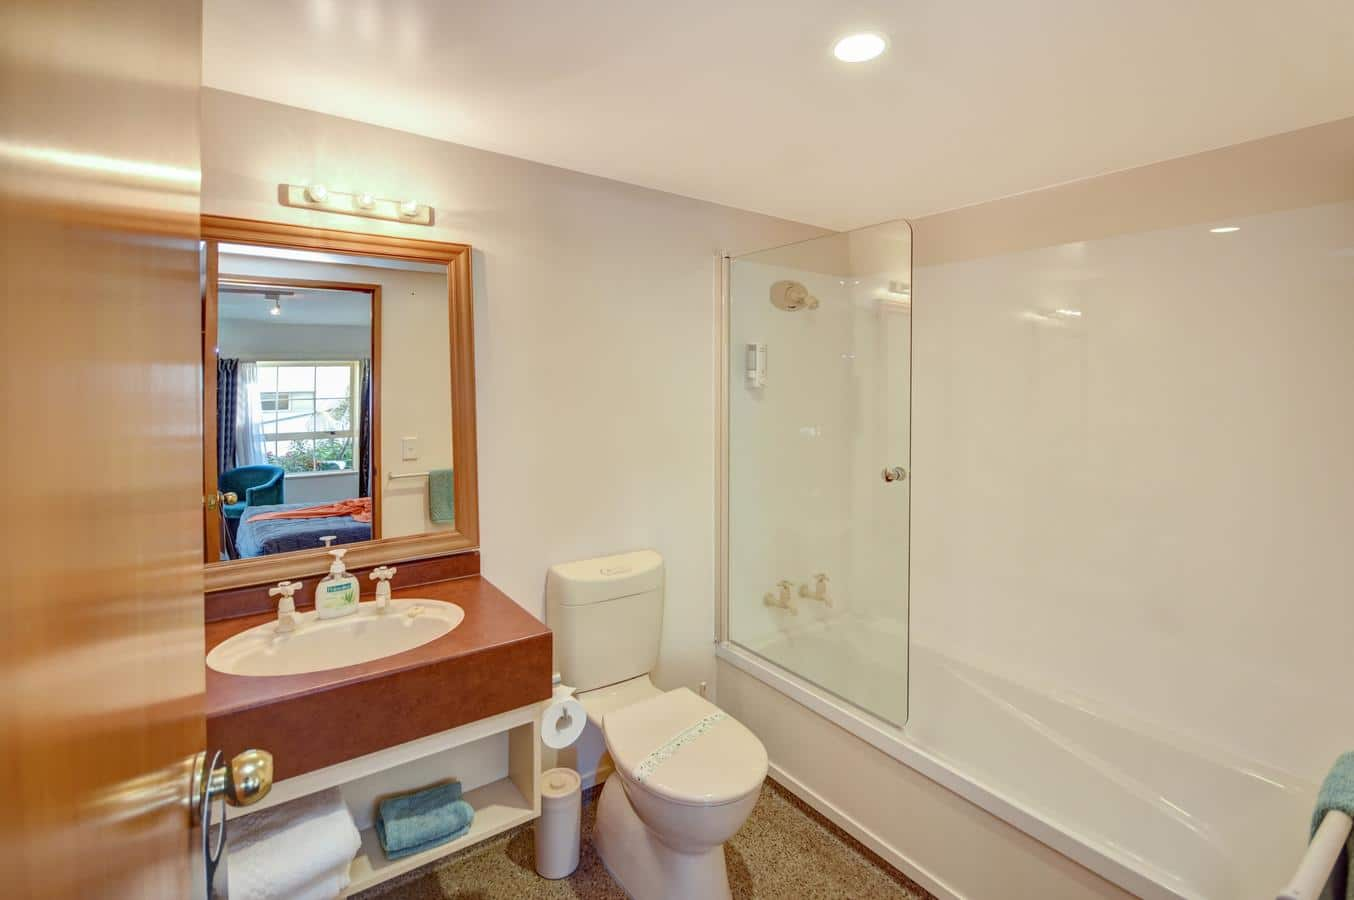 Bathroom with bath, sink and toilet